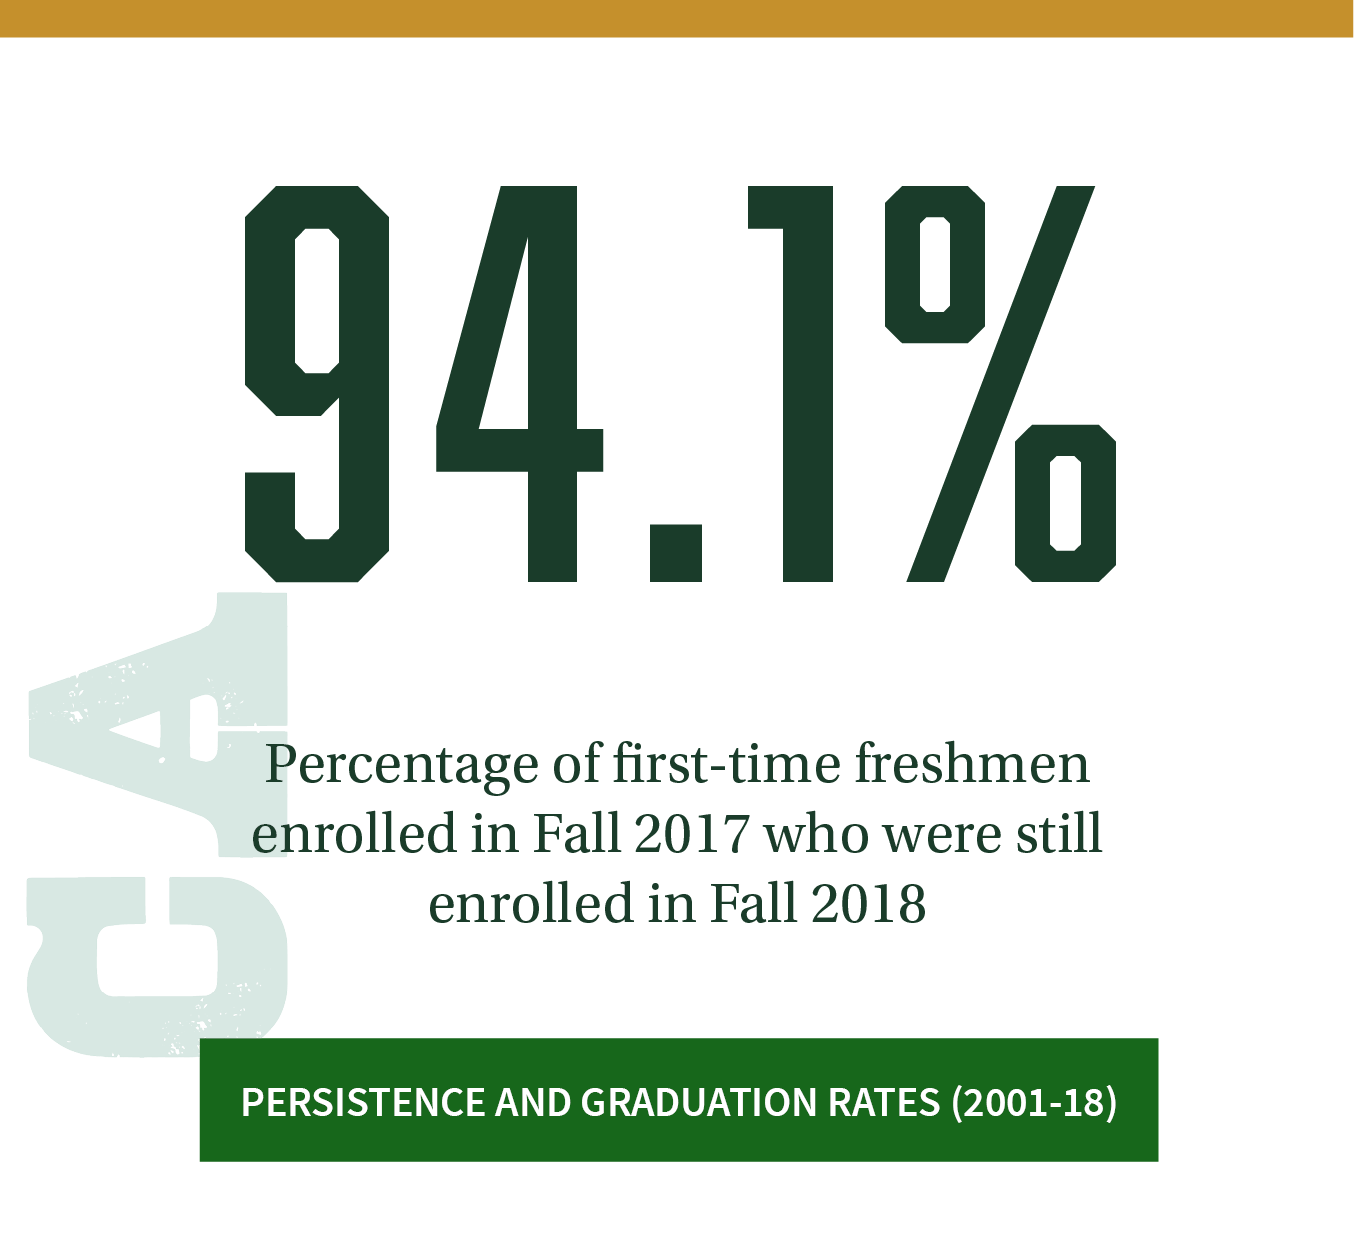 94.1%. Percentage of first-time freshmen who started in Fall 2017 and who were still enrolled Fall 2018. Click to see persistence and graduation rates (2001-2018).